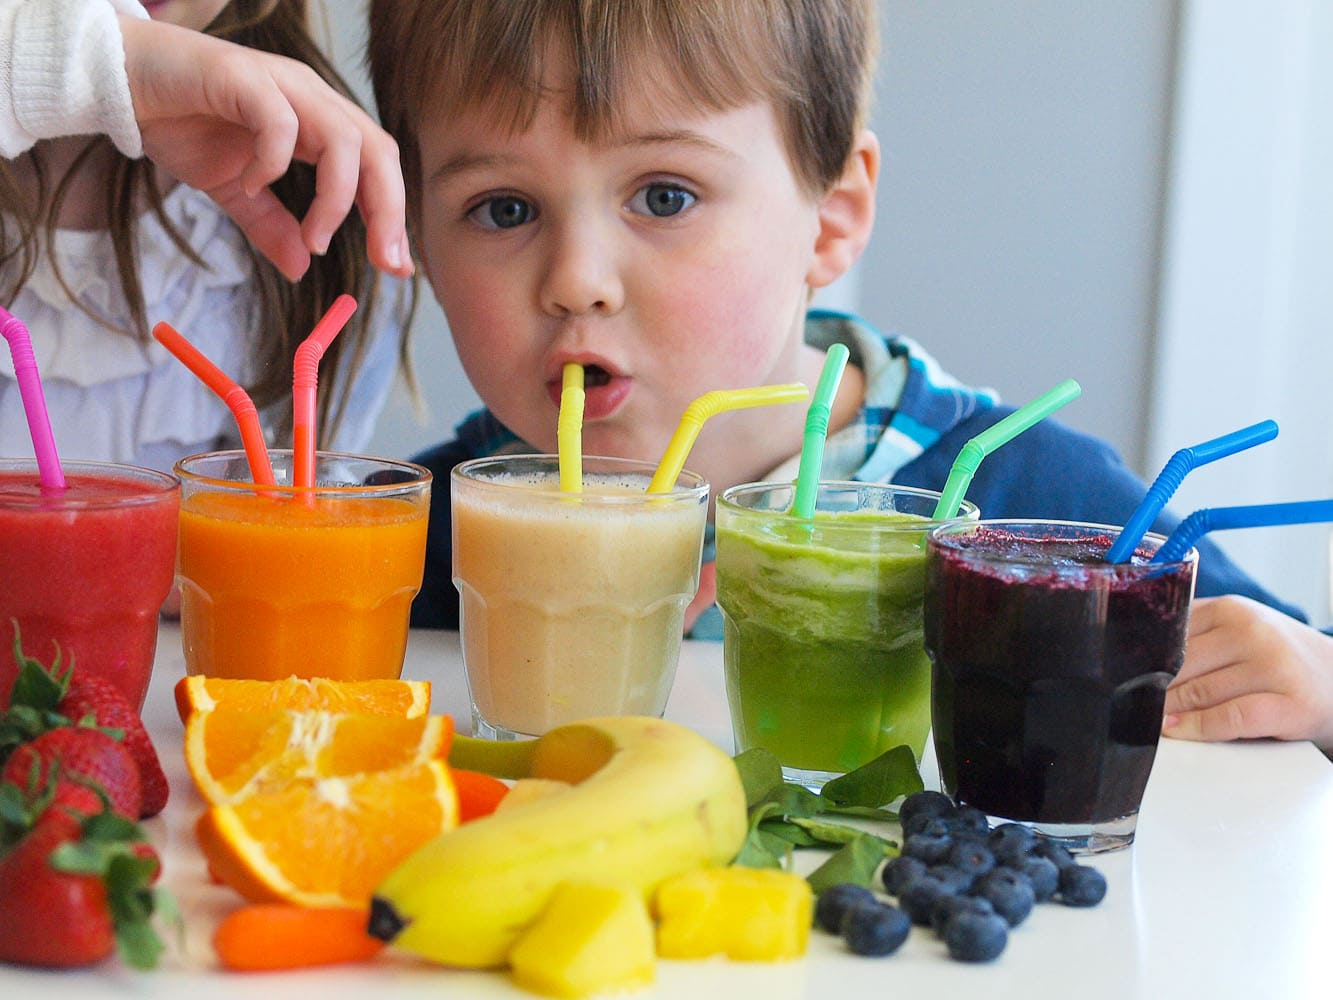 Rainbow Smoothies A Tasting Activity For Kids